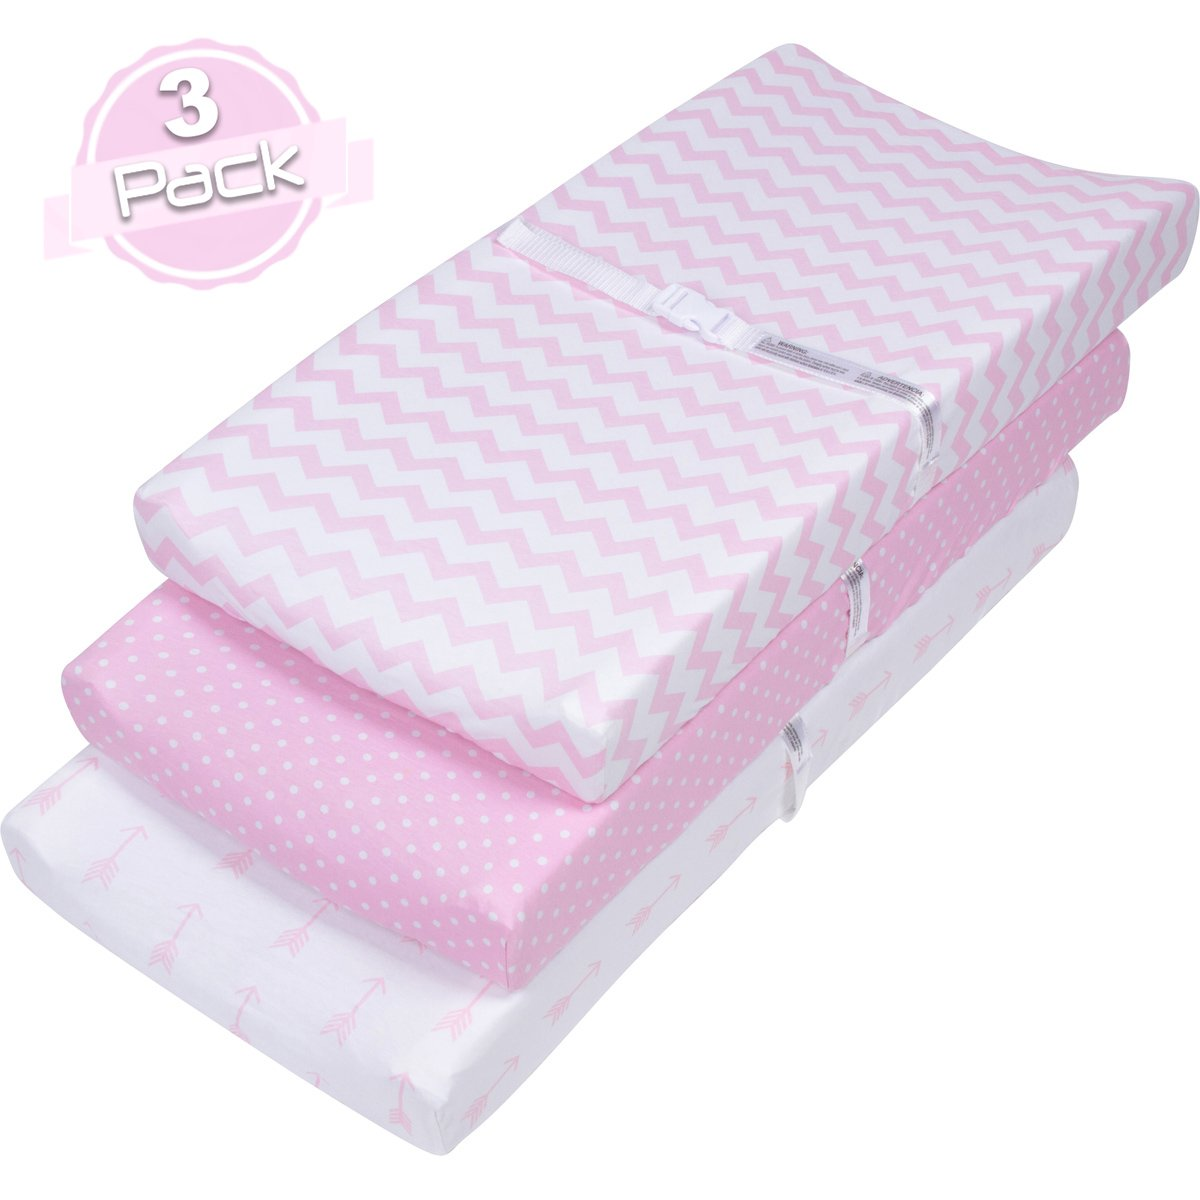 BaeBae Goods Changing Pad Cover Set for Girls | Cradle Bassinet Sheets/Change Table Covers for Boys & Girls | Super Soft 100% Jersey Knit Cotton | Pink and White | 150 GSM | 3 Pack by BaeBae Goods